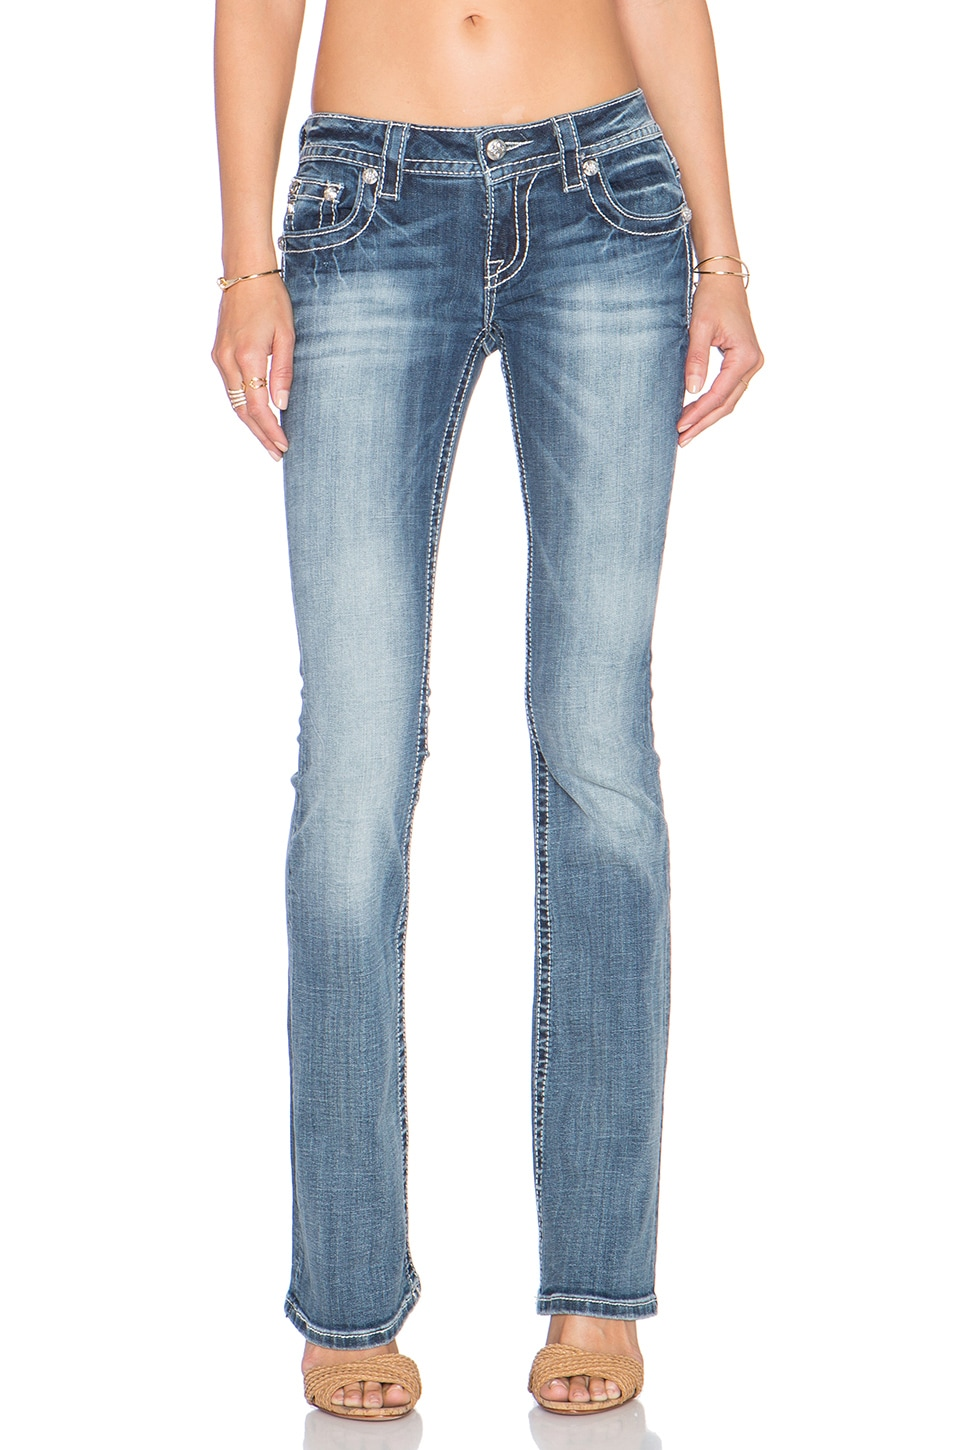 Miss Me women's clothes capture the multi-dimensional character and style of the modern girl. Shop Buckle's women's clothing collection by Miss Me and find Miss Me jeans and pants, tops, hoodies and sweaters, skirts and dresses, vests, shorts and crops and accessories.